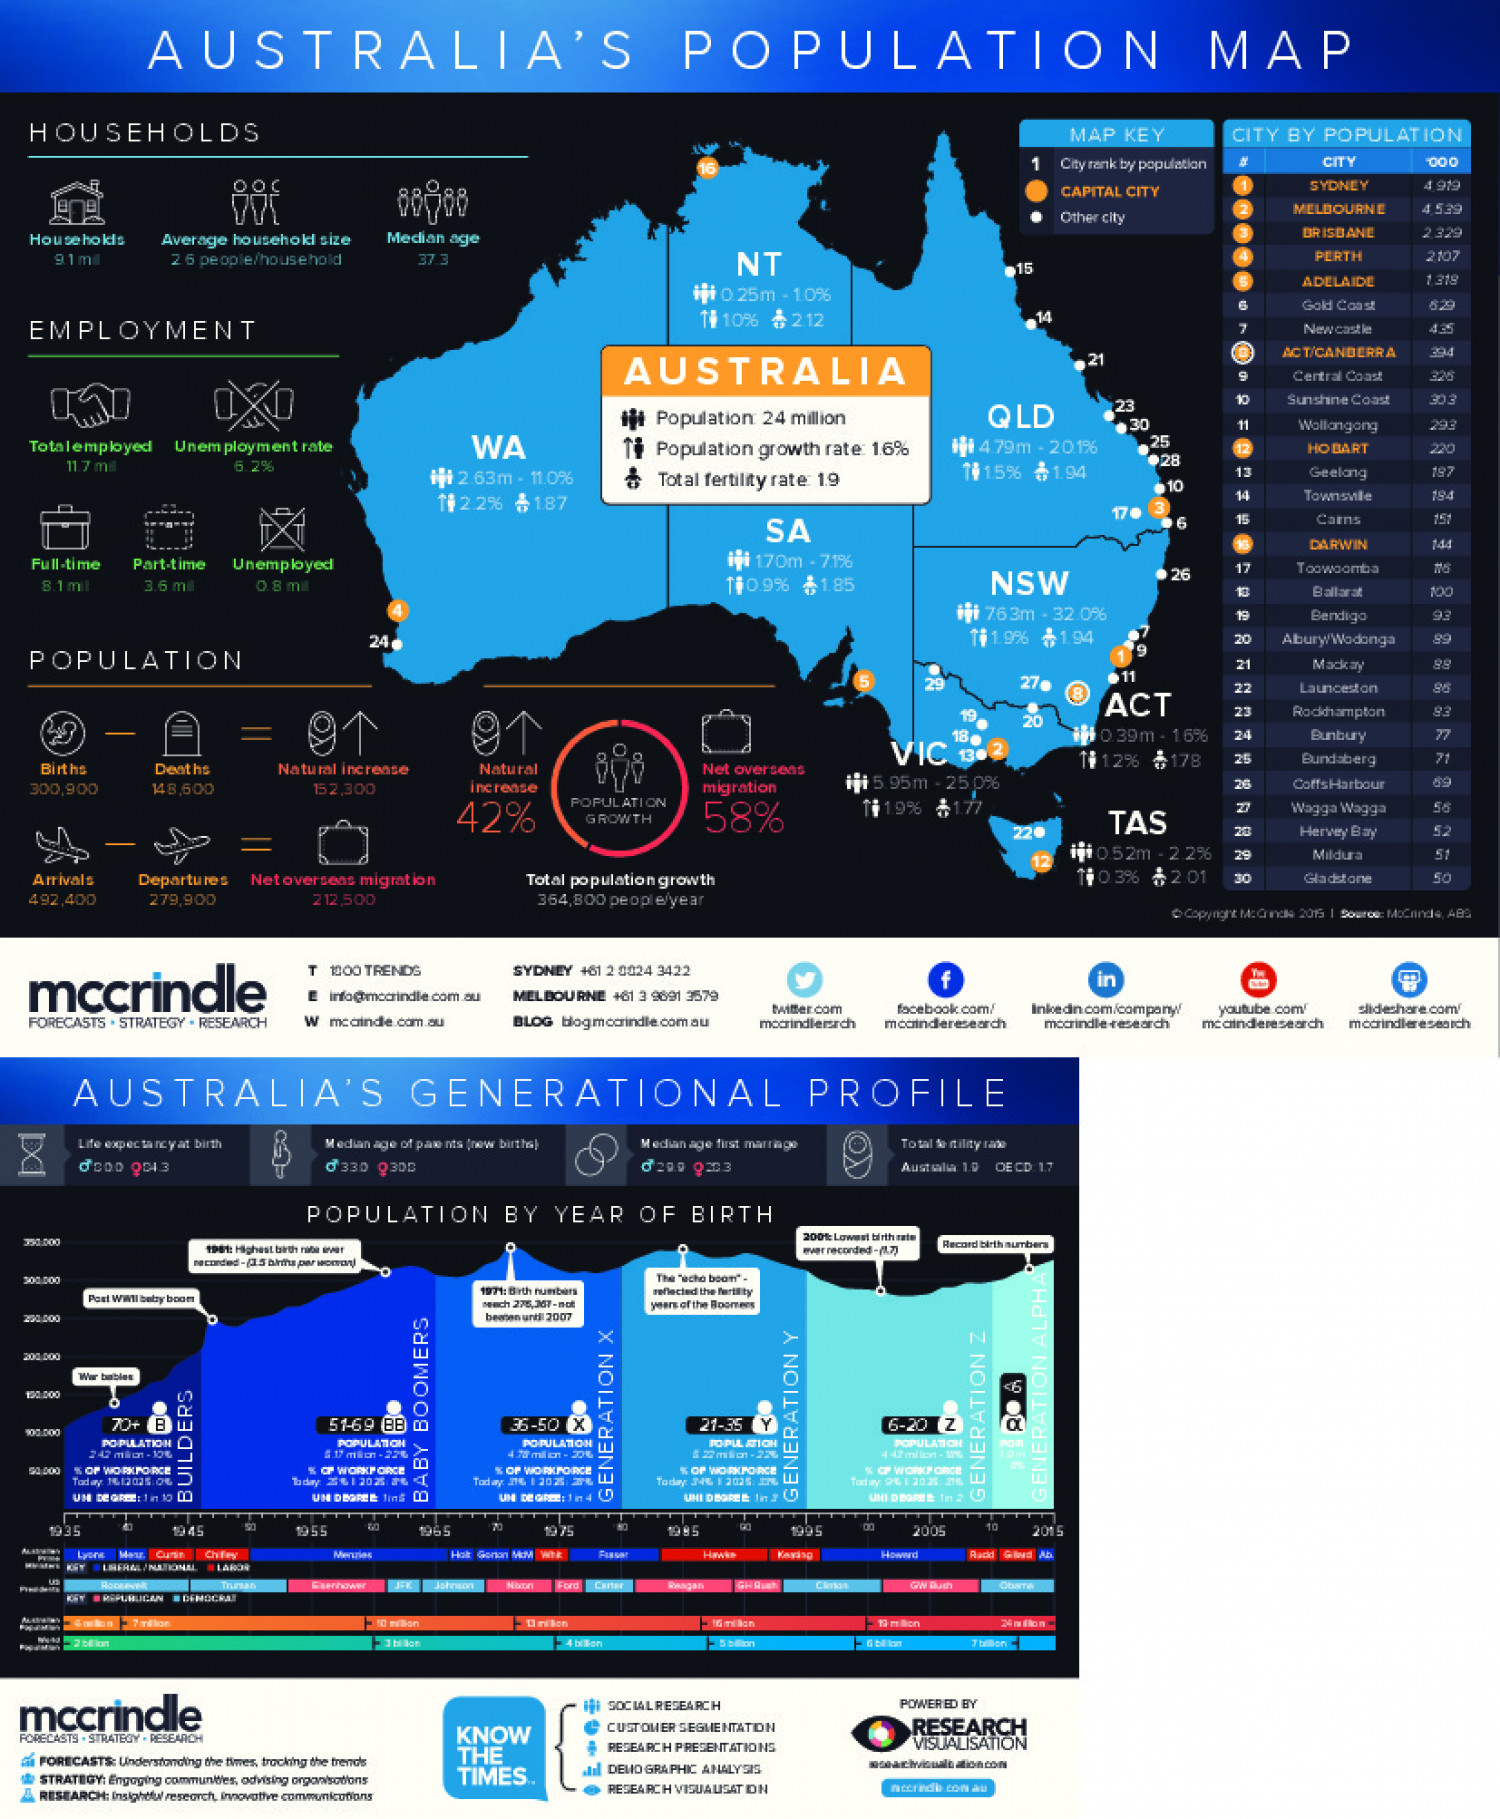 Australia's Population Map and Generational Profile Infographic